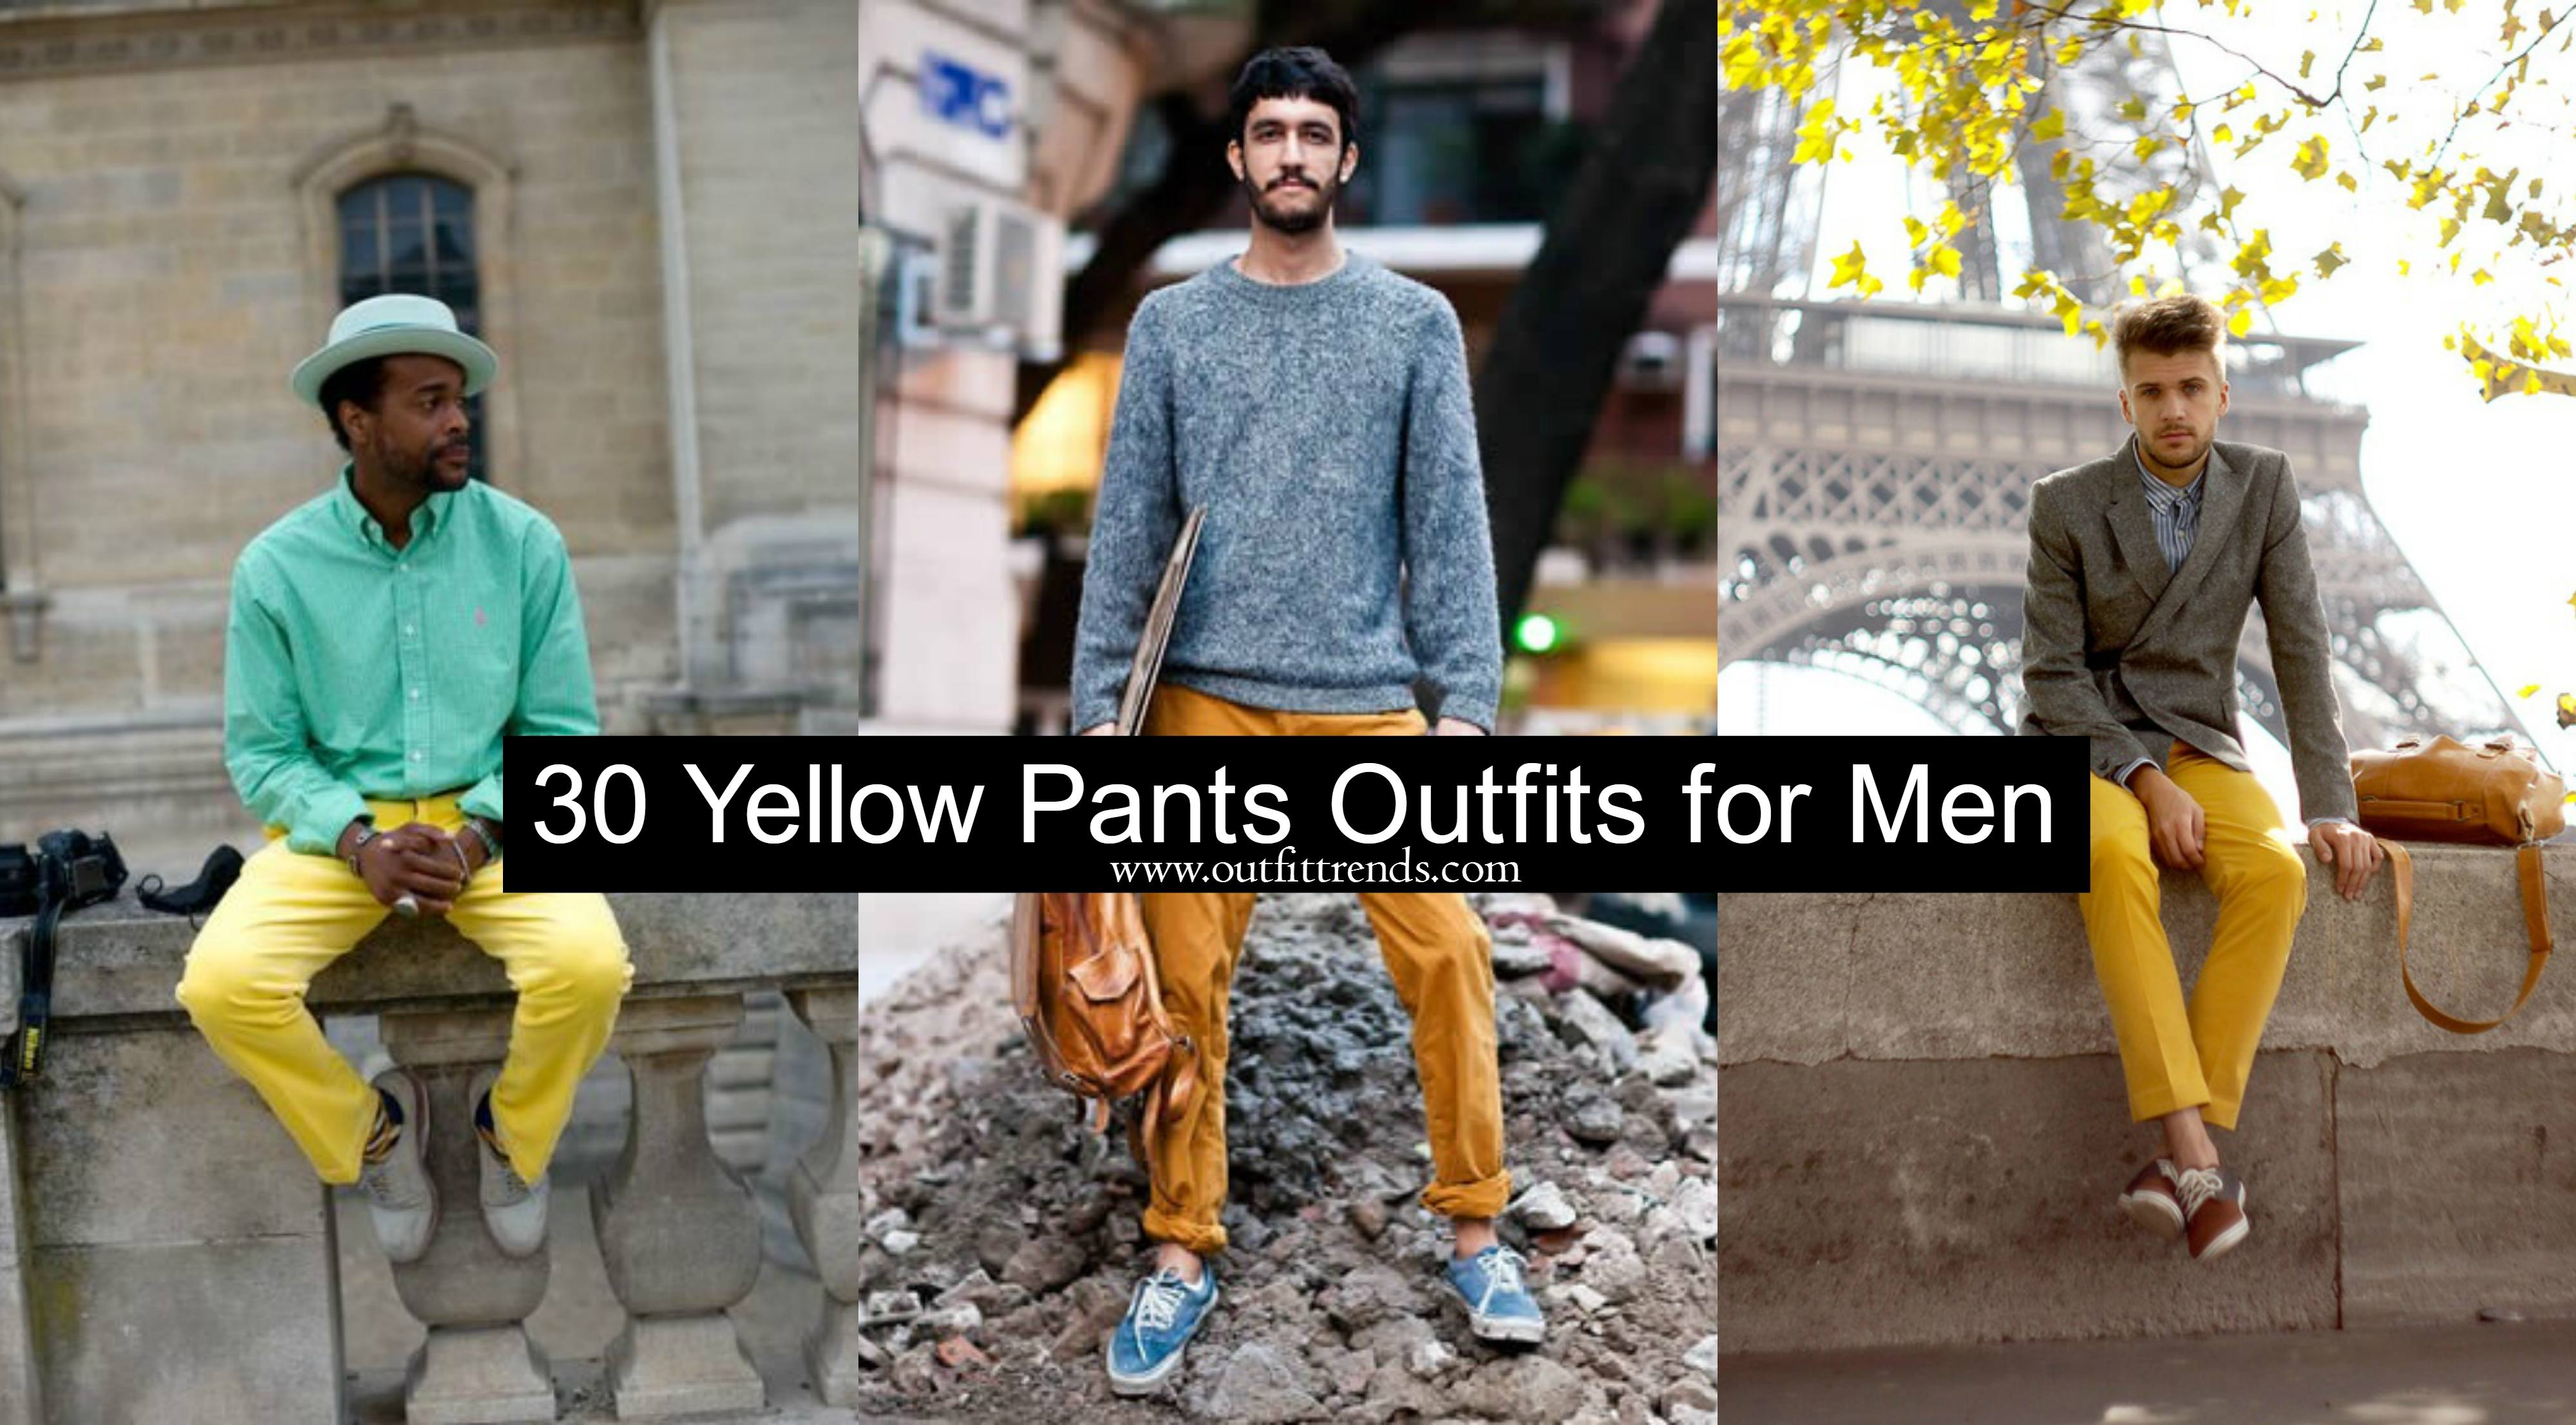 30-Yellow-Pants-Outfits-for-Men Men's Yellow Pants Outfits-35 Best Ways to Wear Yellow Pants